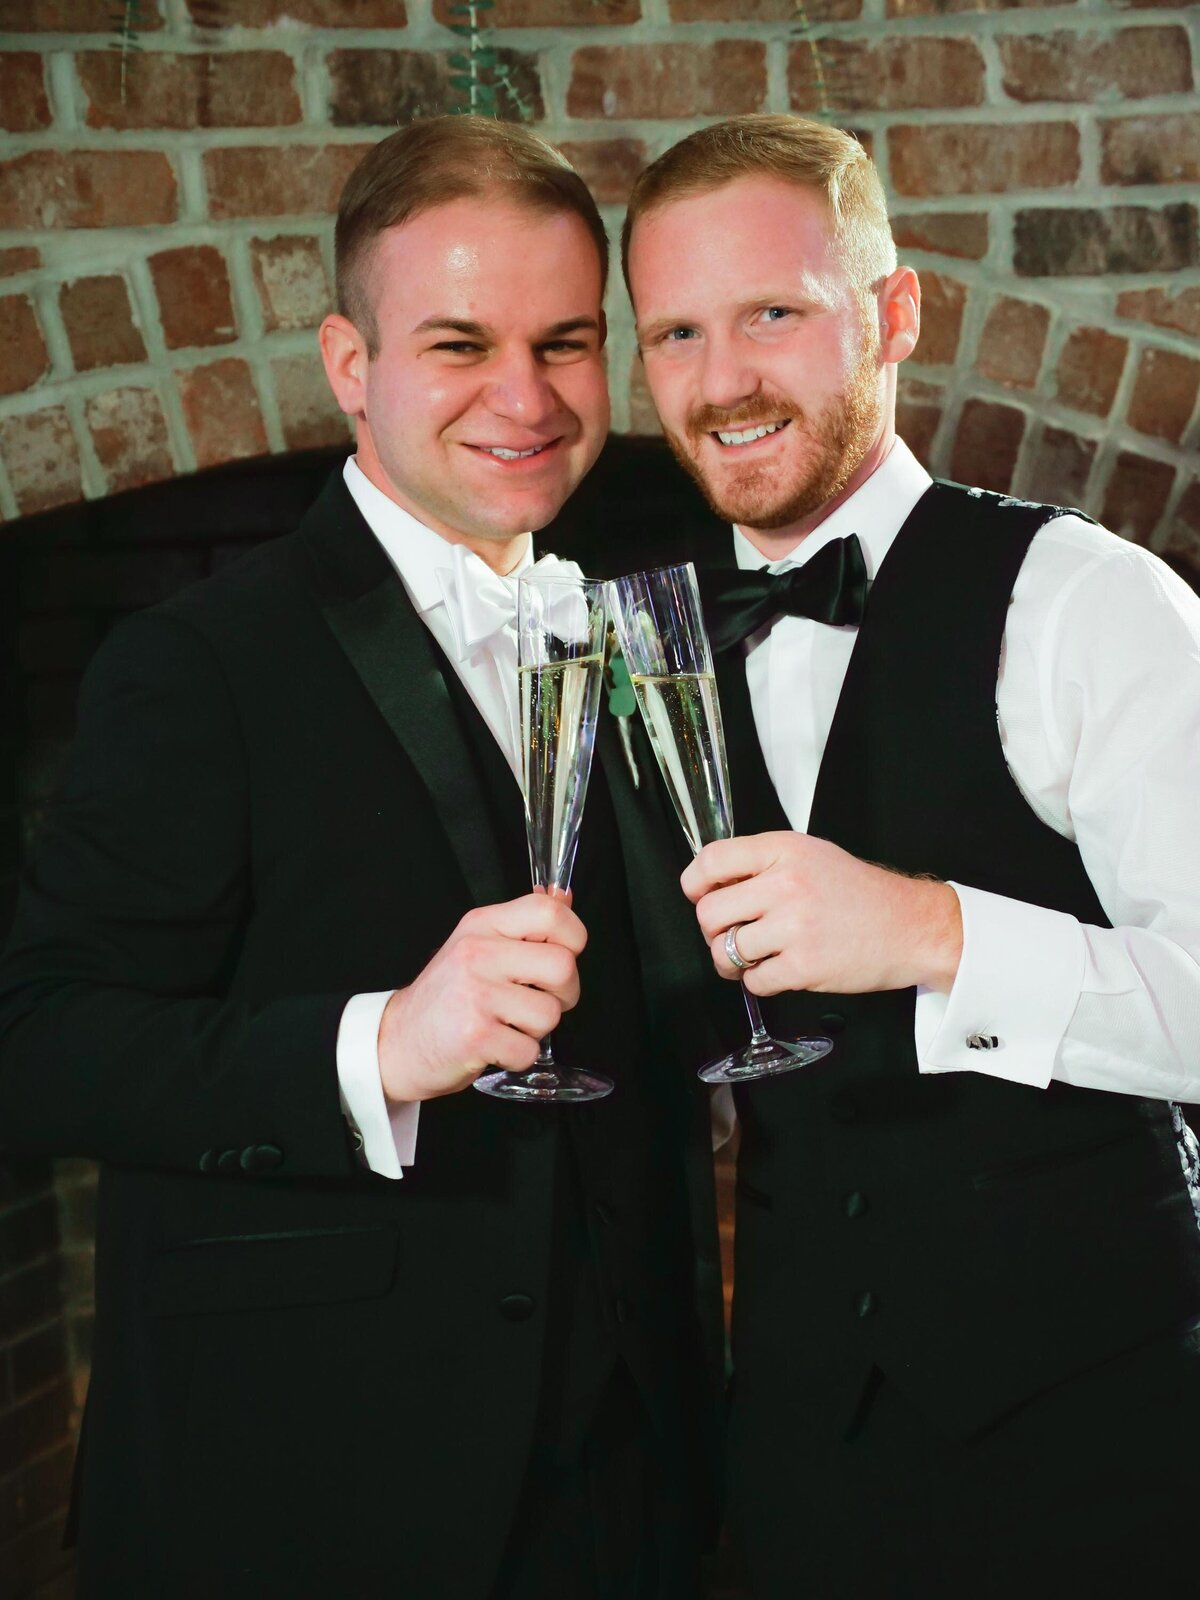 LBGTQ Wedding at The Mackey House  (27 of 27)